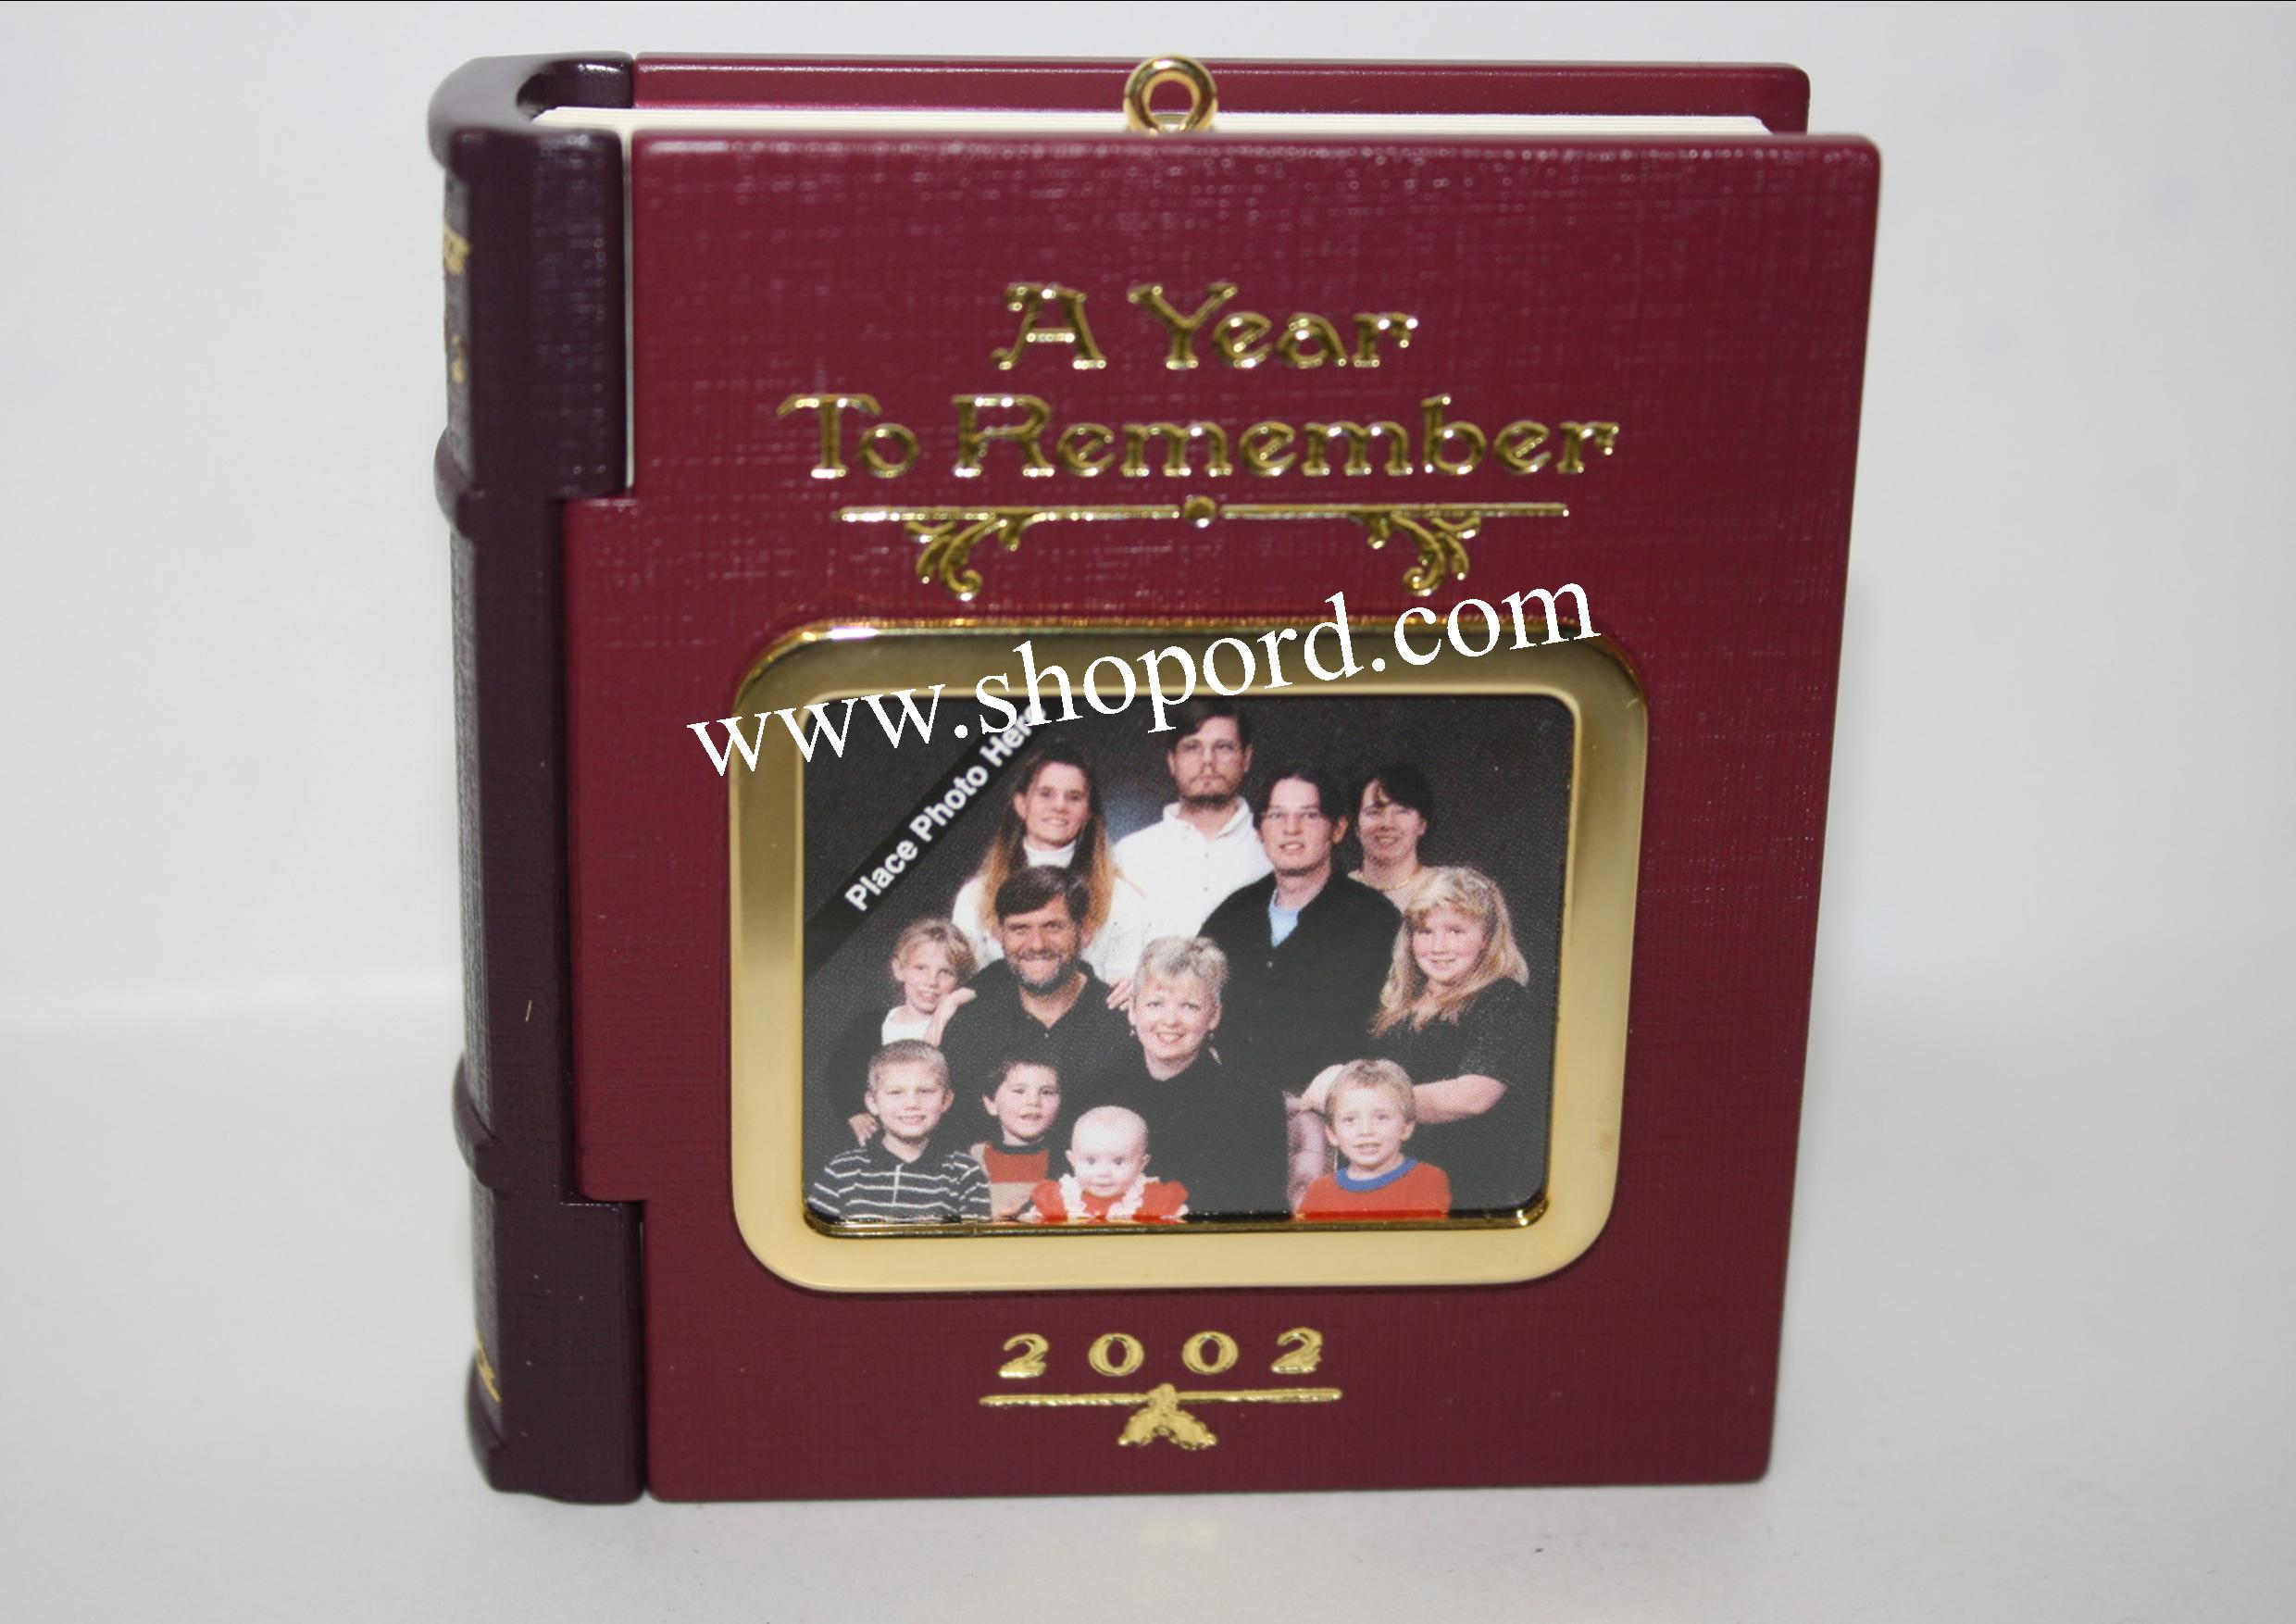 Hallmark 2002 A Year To Remember 2002 Photo Holder Ornament QX2813